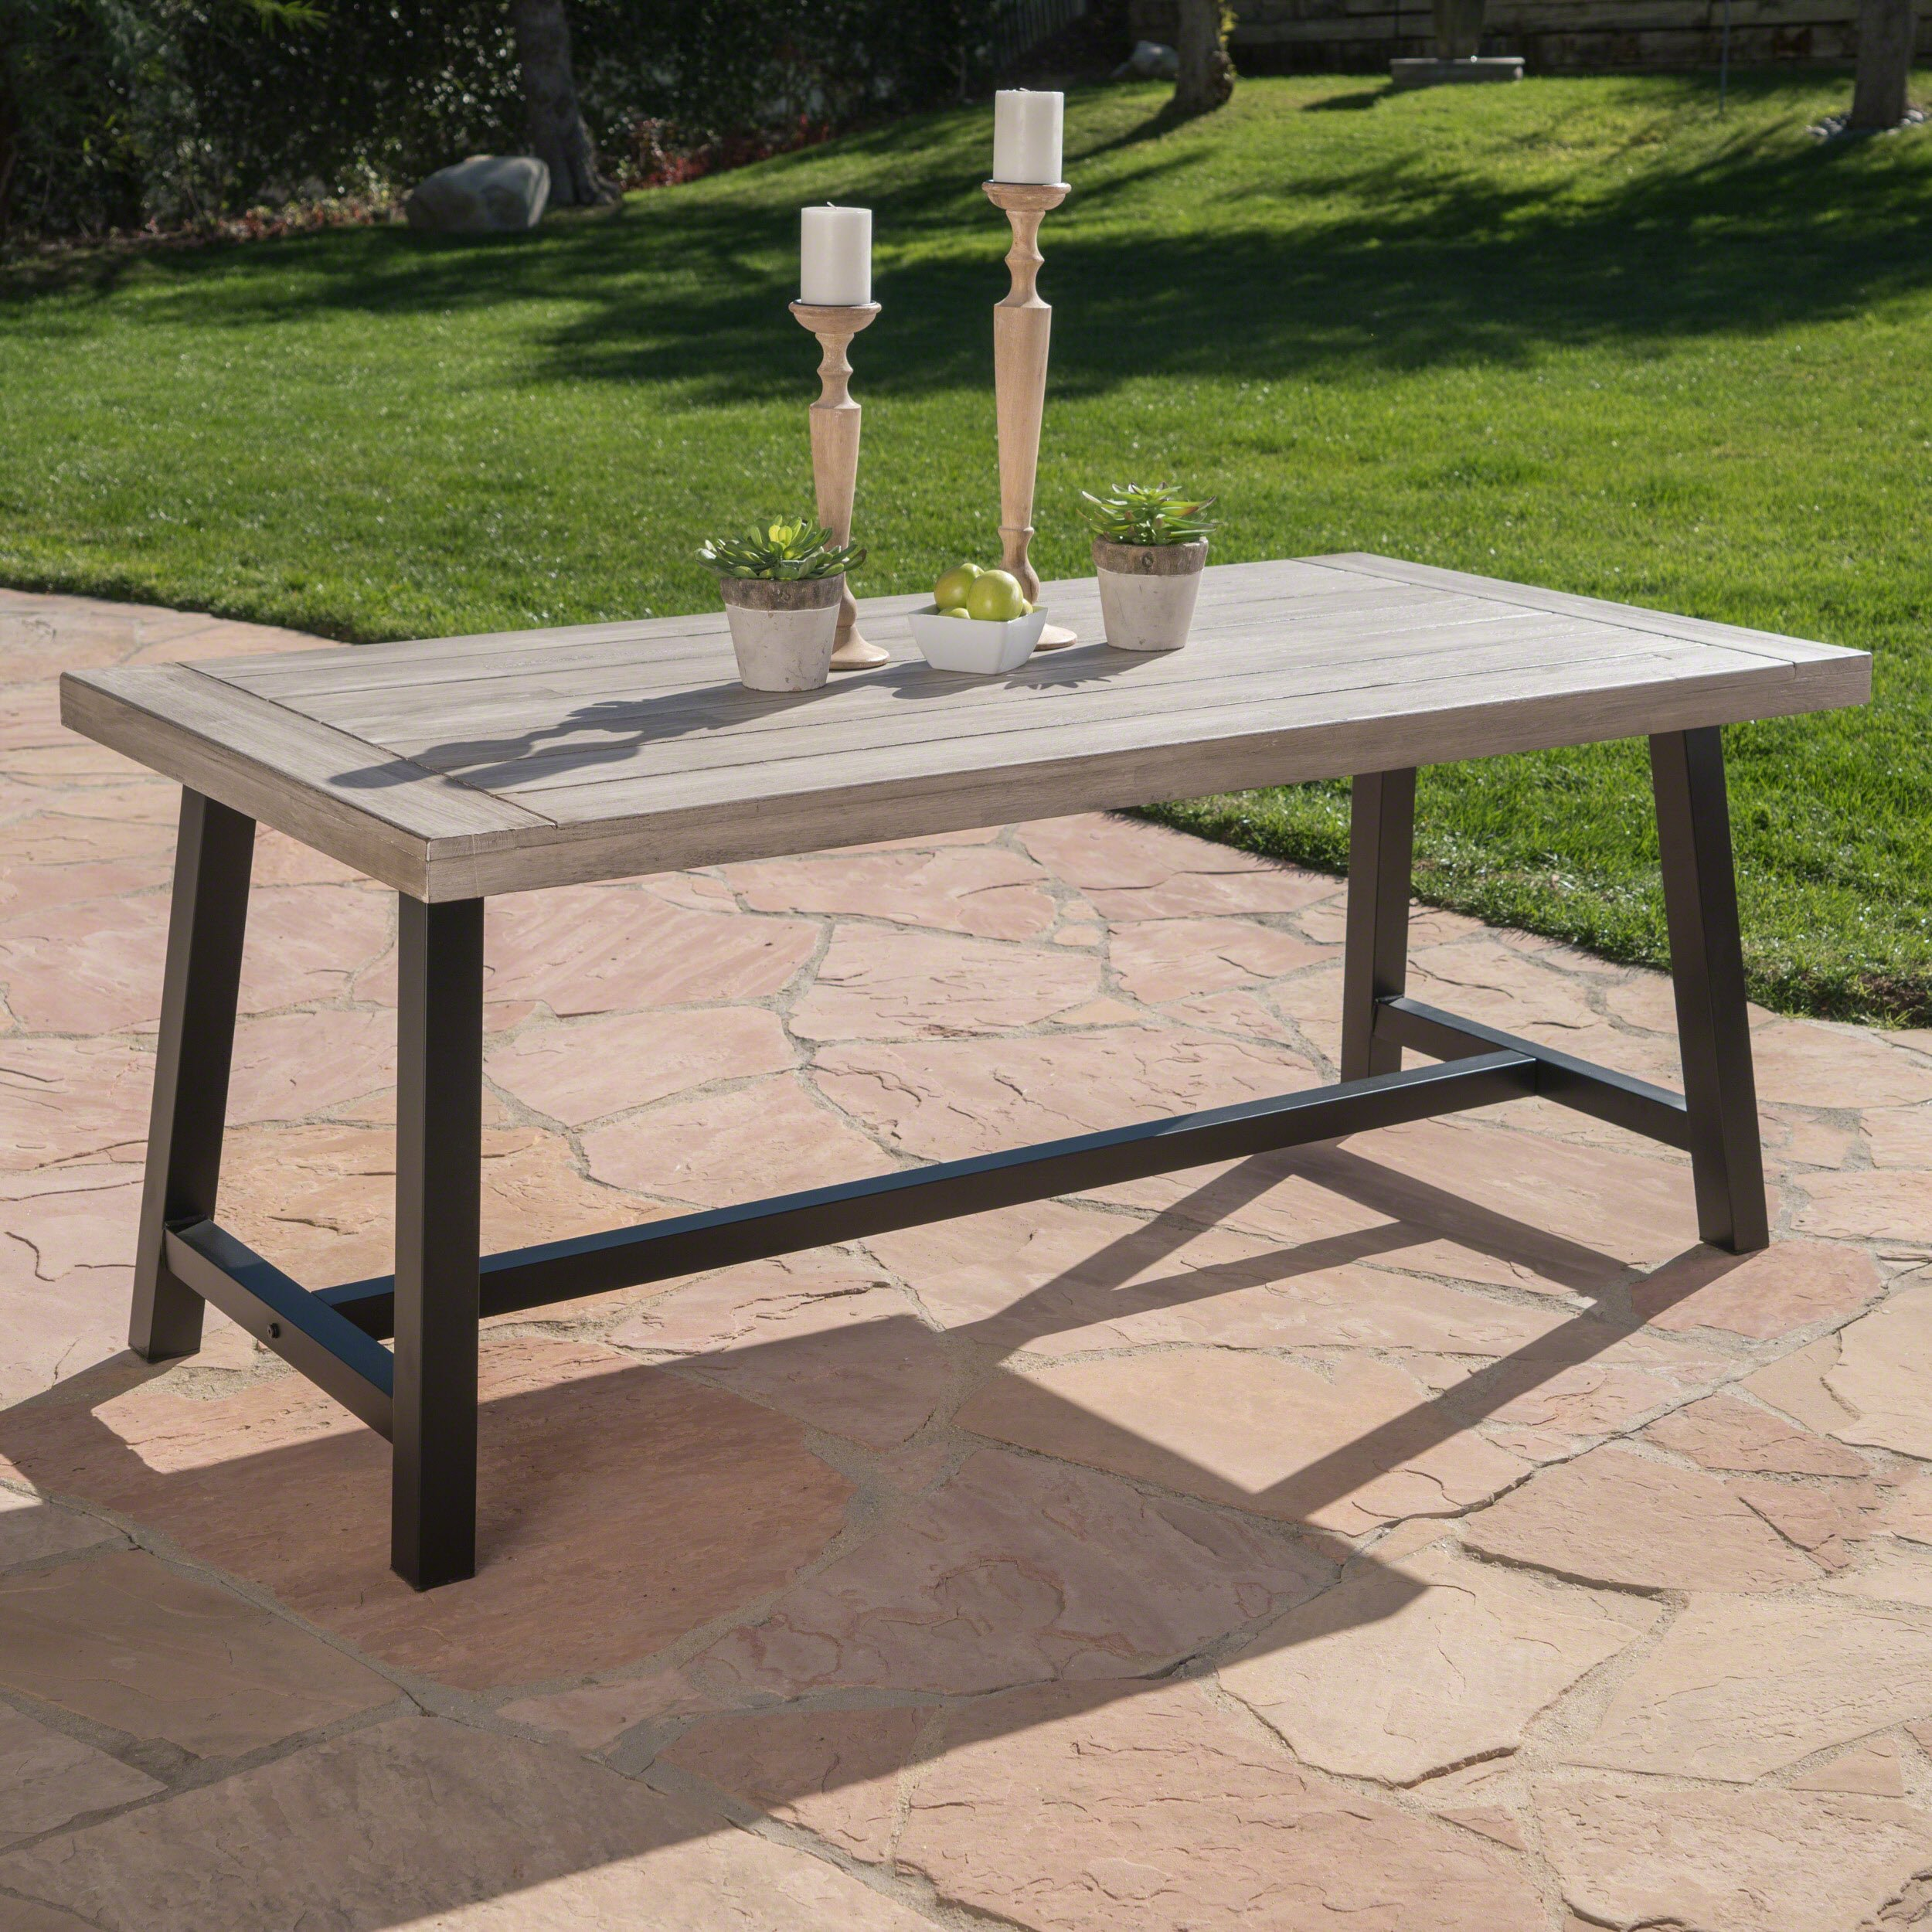 Cassie Outdoor Light Grey Sandblast Finish Acacia Wood Dining Table with Black Rustic Metal Finish Frame by Great Deal Furniture